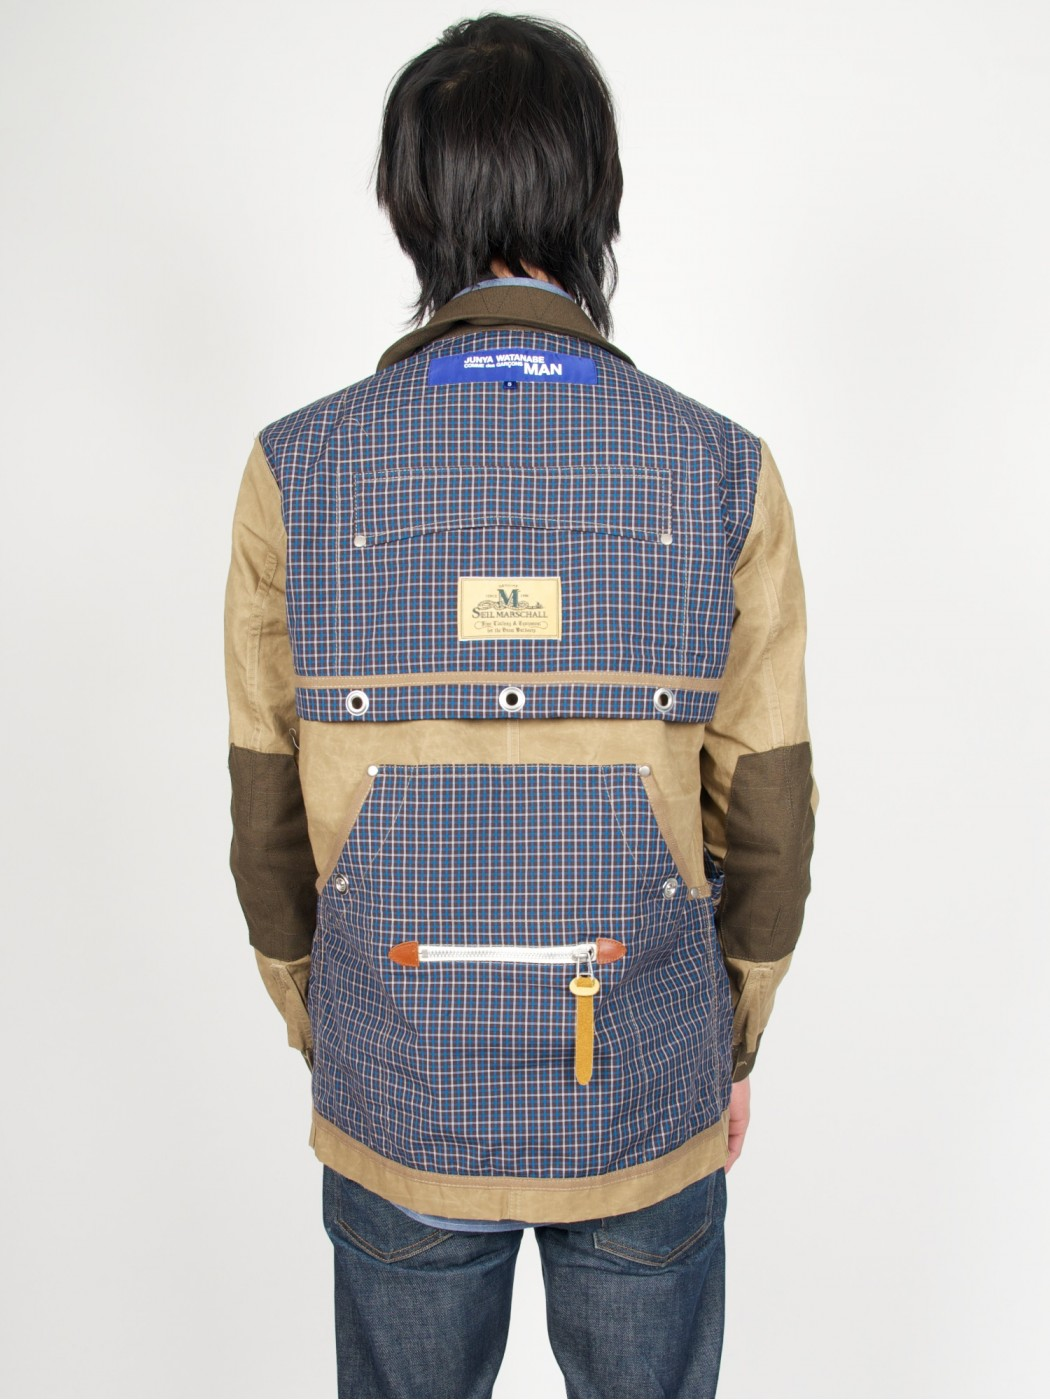 seil-marschall-x-hervier-reversible-waxed-canvas-jacket